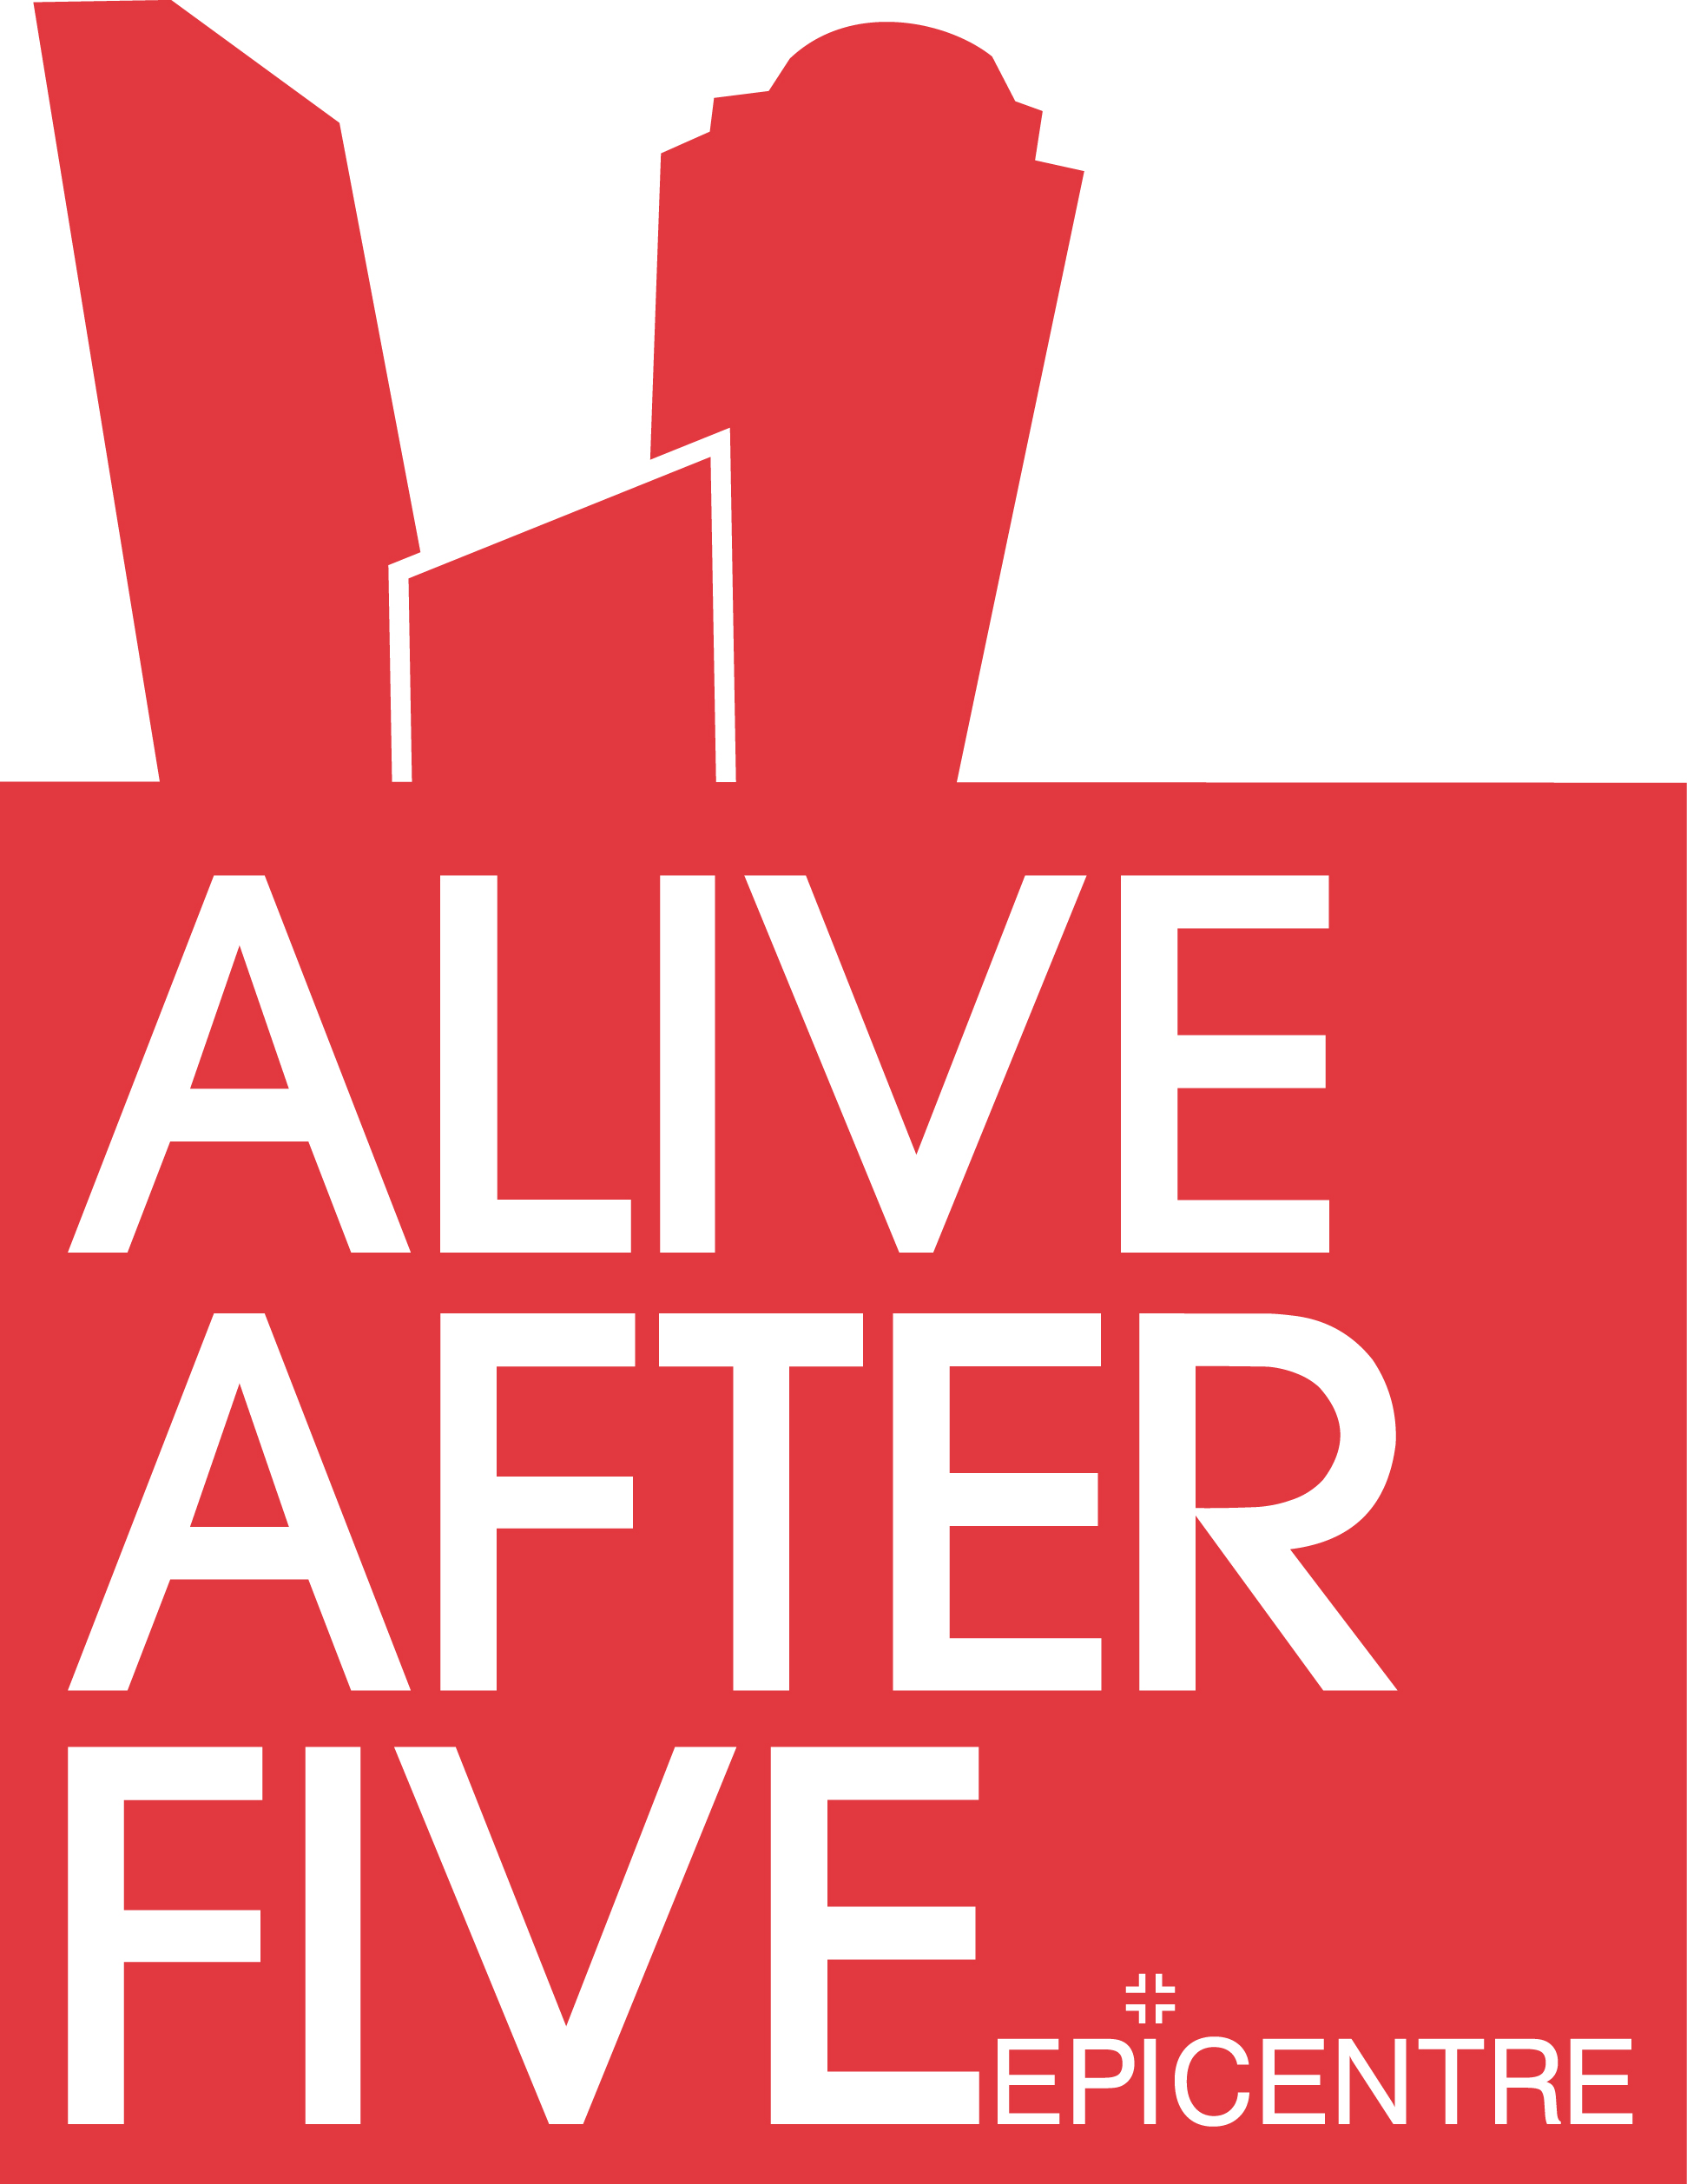 Alive After Five @ Epicenter